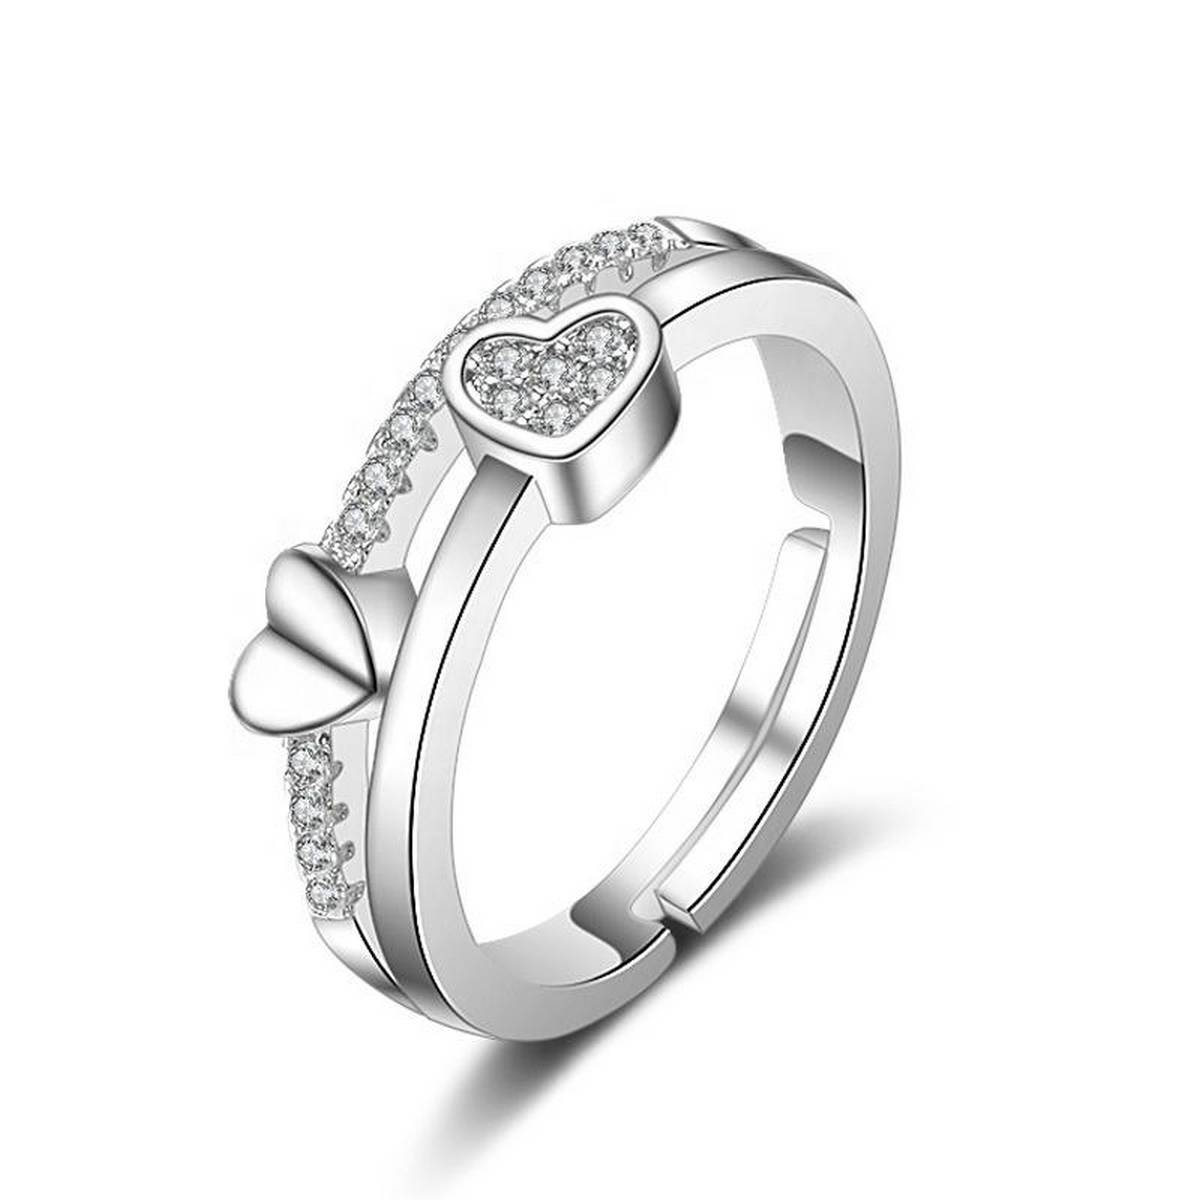 Fashion SS Wedding Engagement Collection 925 Silver Plated Double Heart Love Styling Zircon Rings for Girls & Women - Nj376